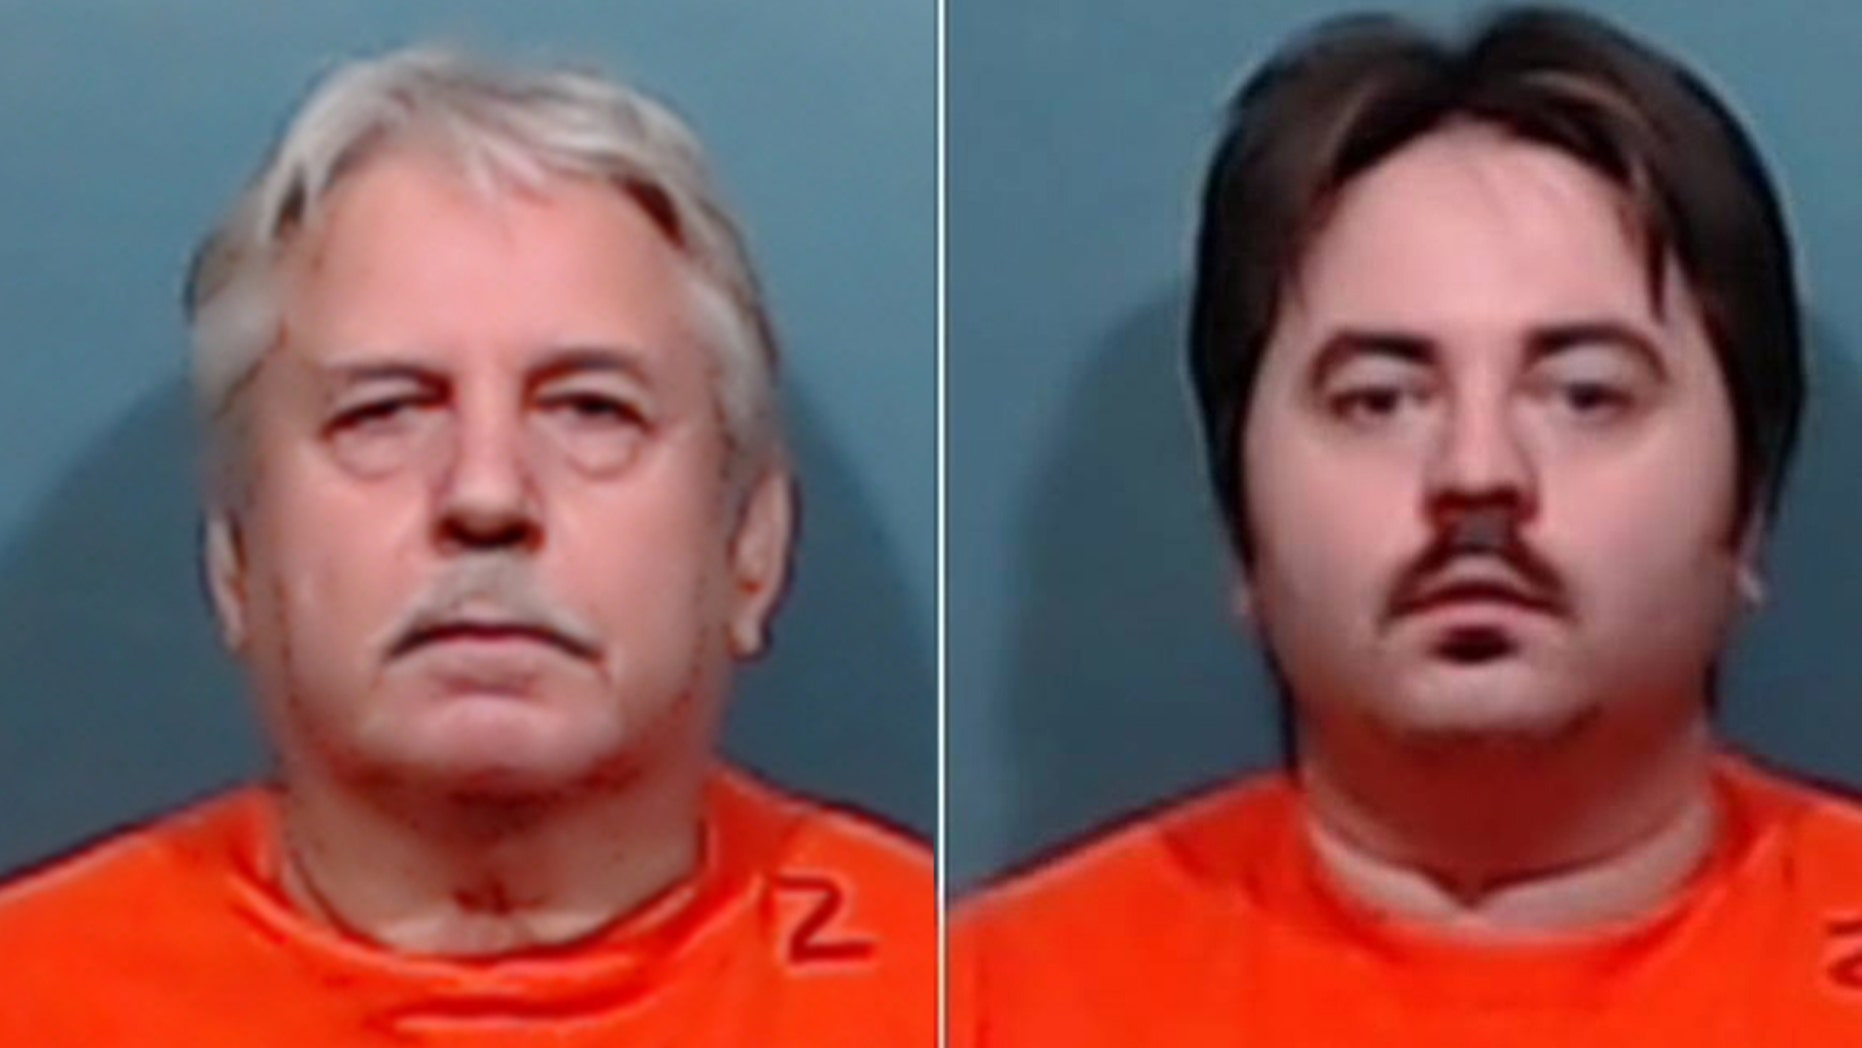 John Miller, left, and his son, Michael Miller, right, were charged with murder after their neighbor, Aaron Howard, was fatally shot on Sept. 1.